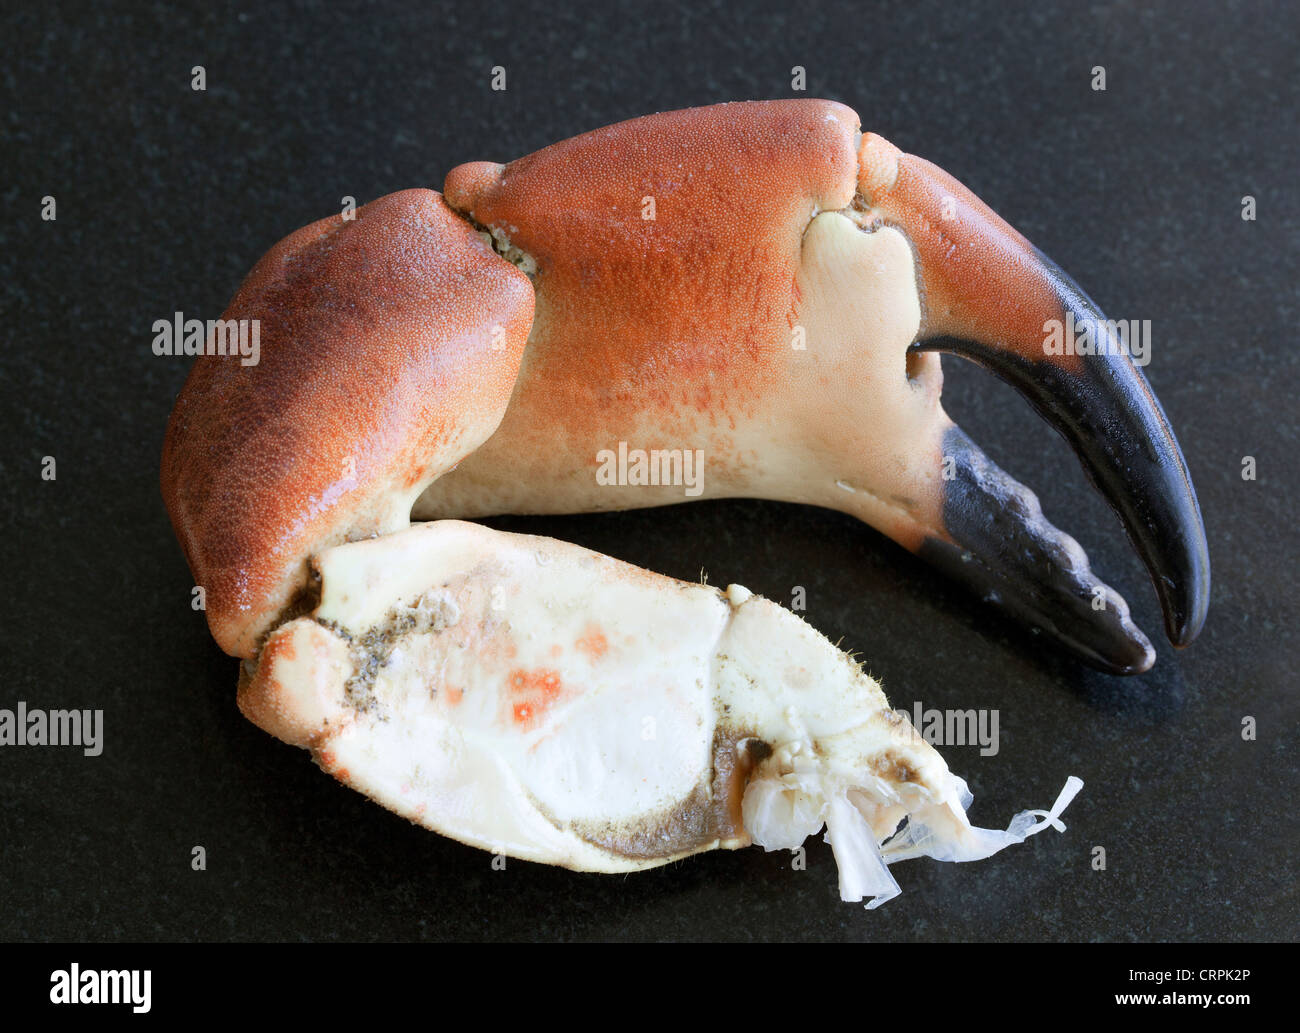 Crab Claw - Stock Image